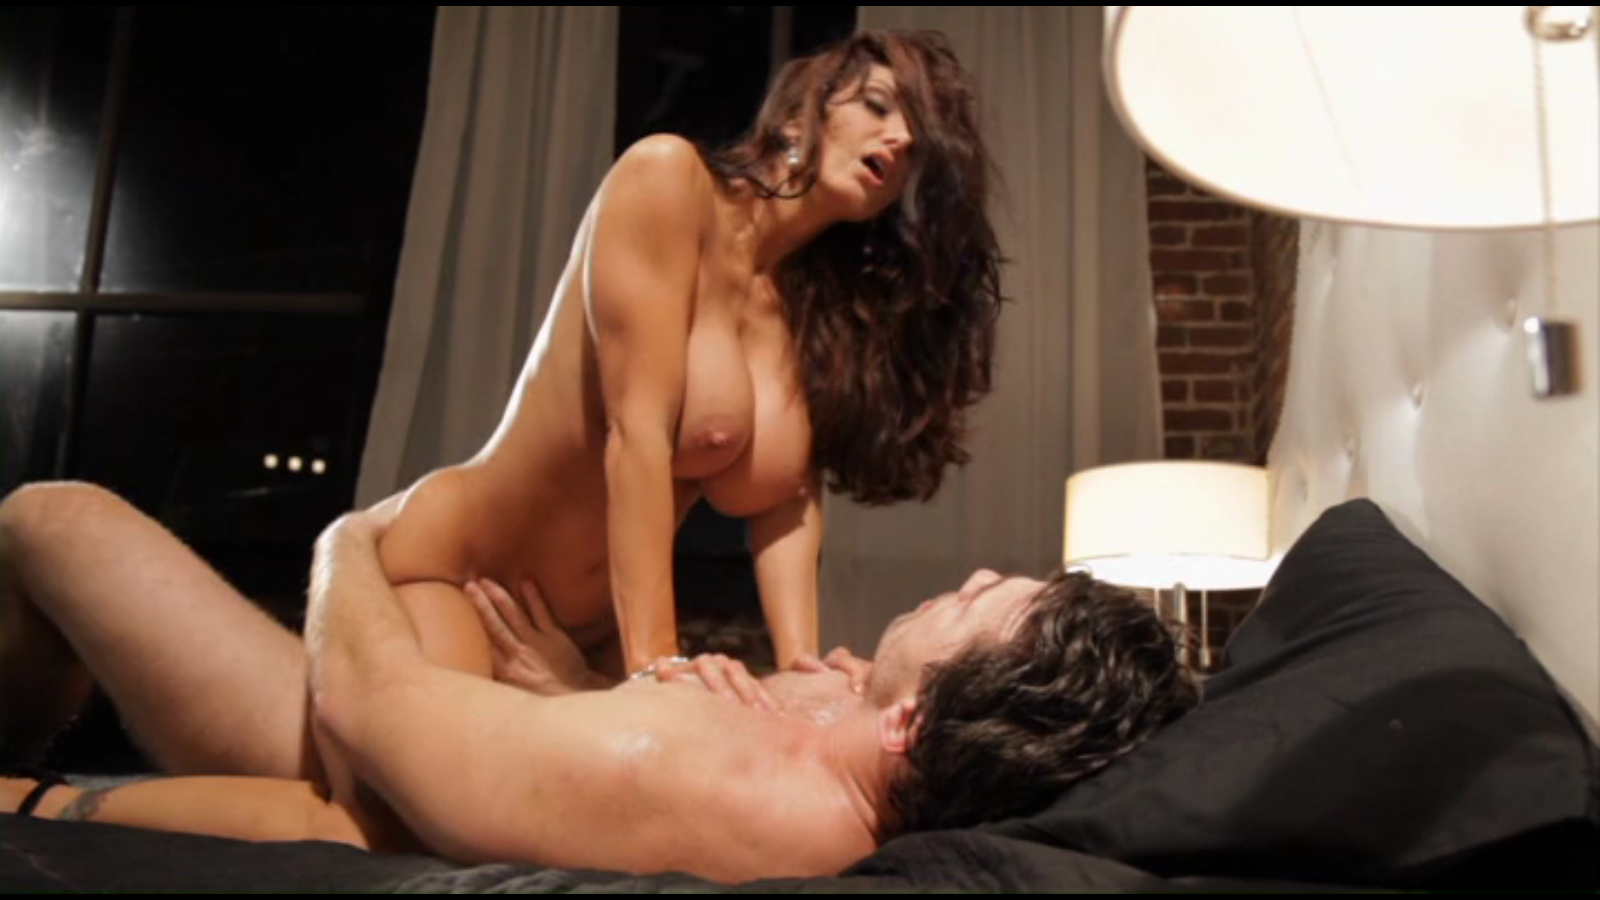 mail order bride sex video